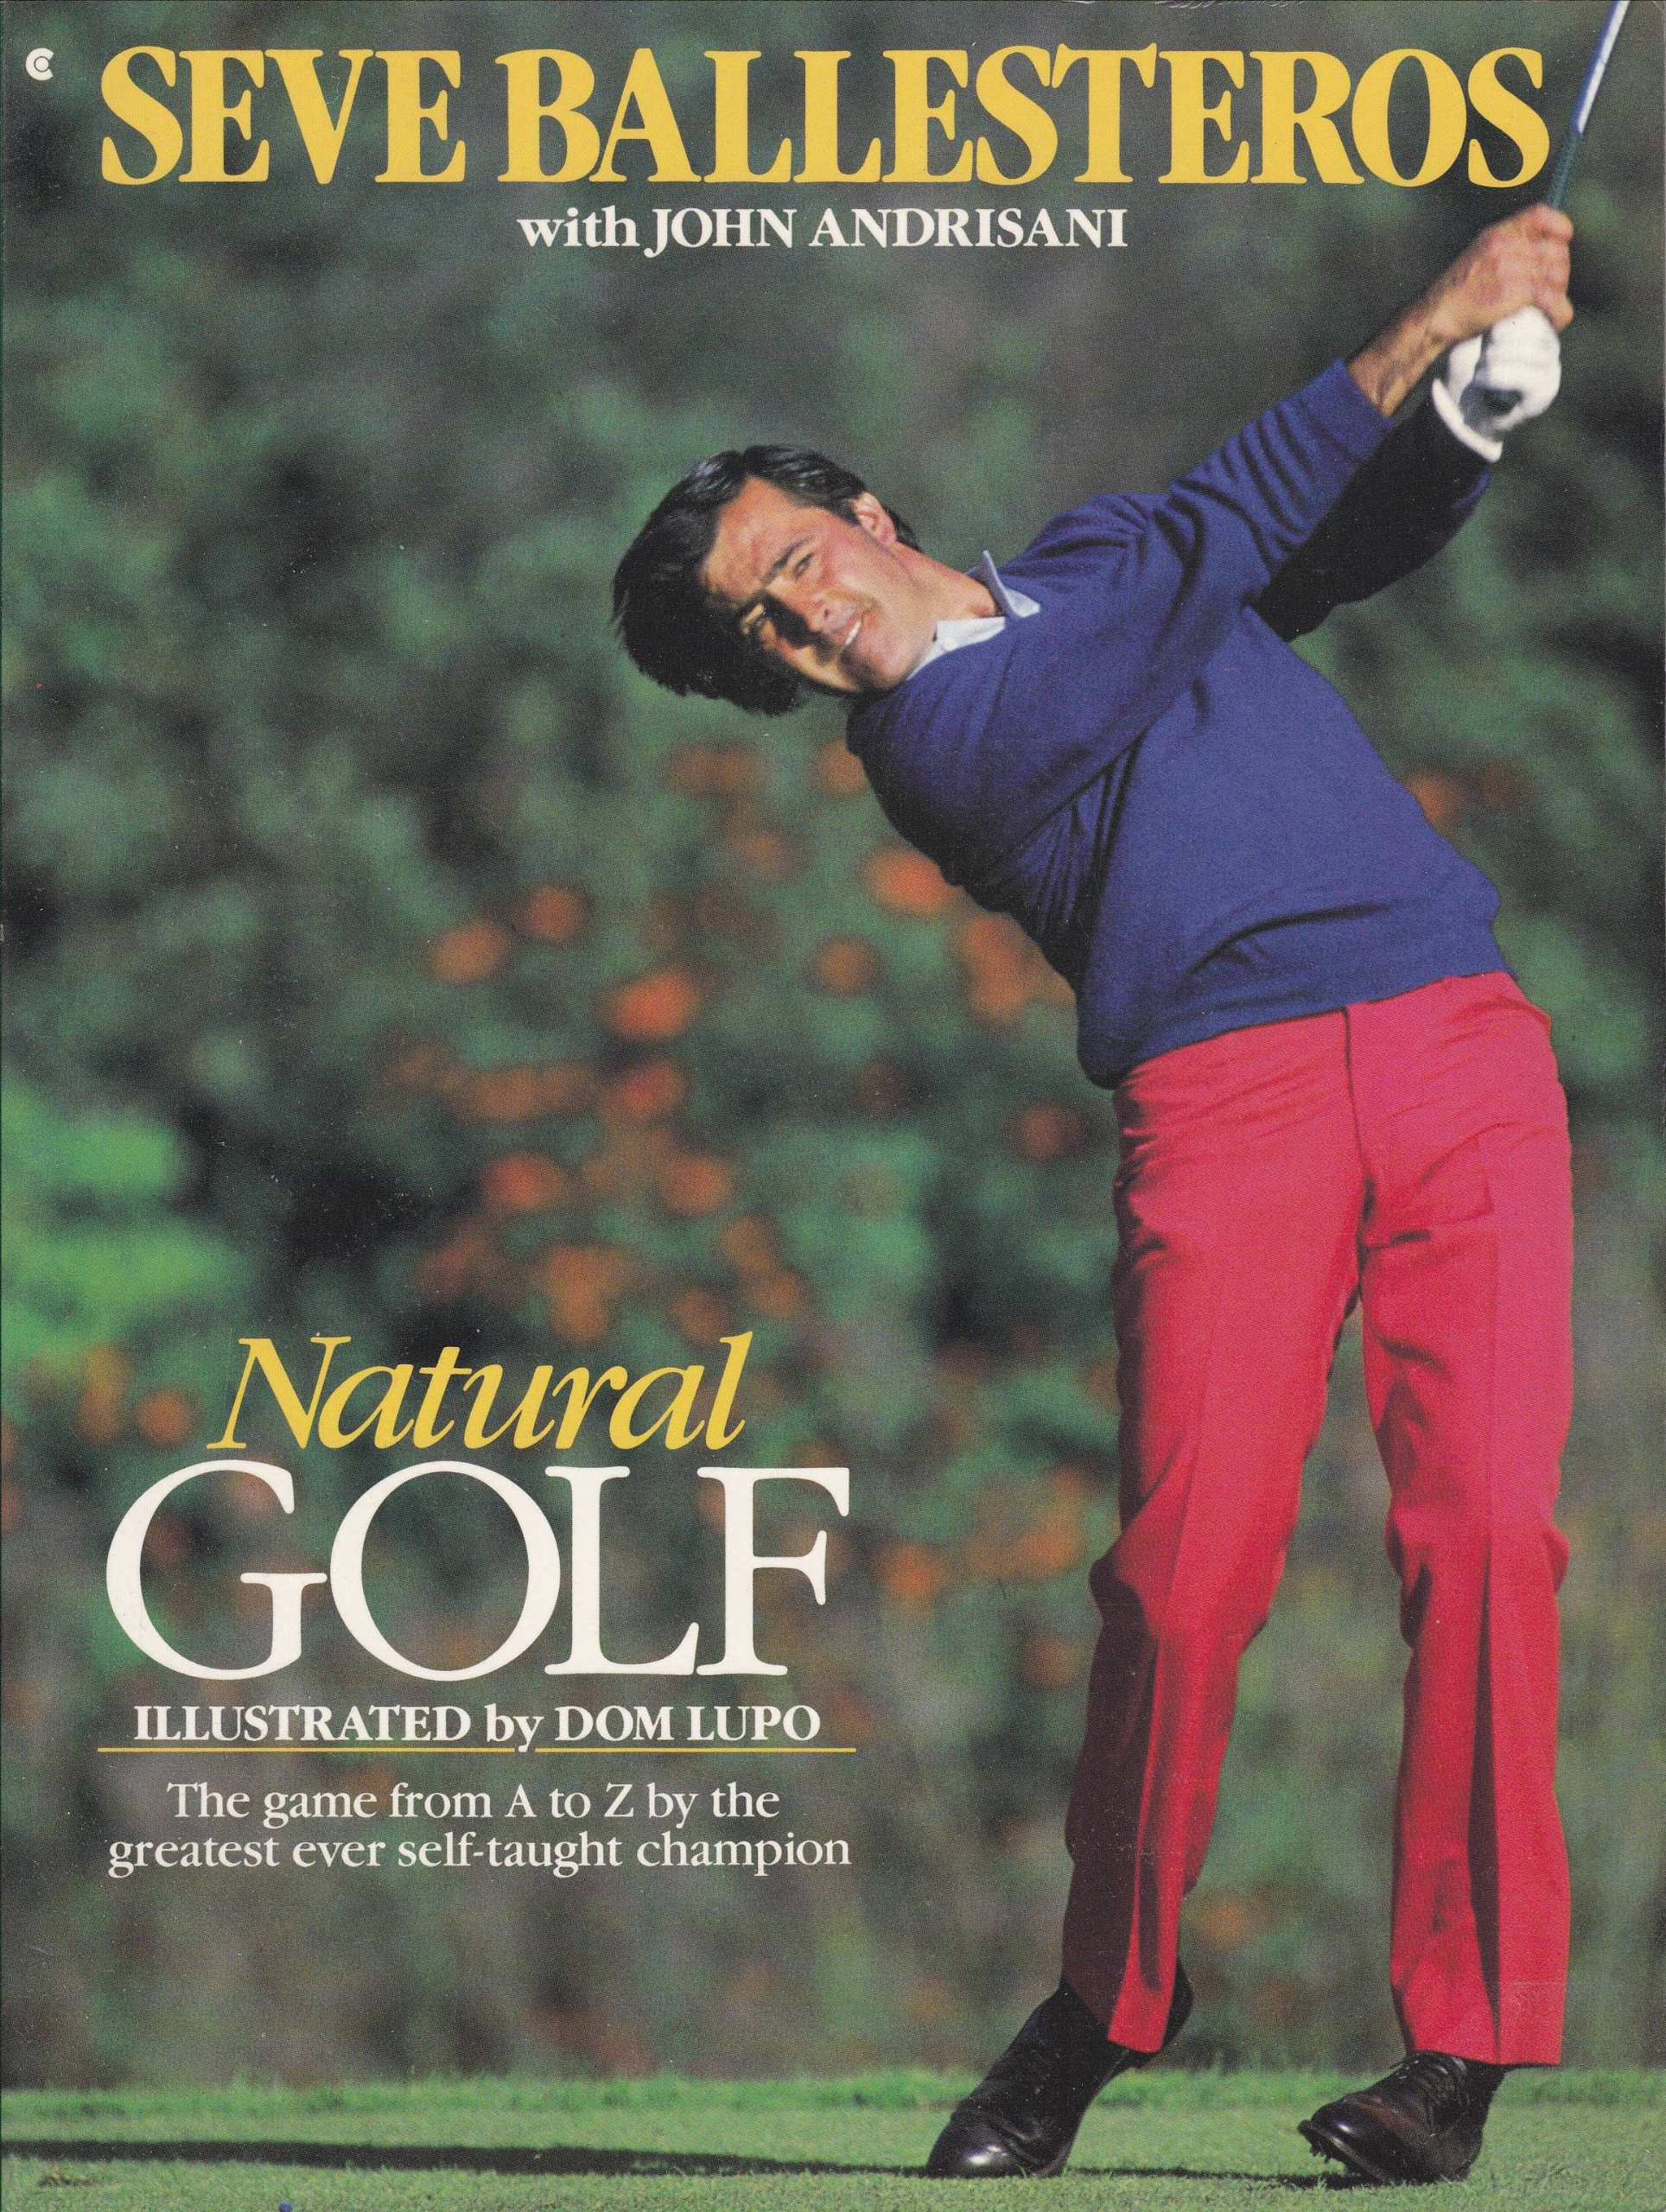 Natural Golf: The Game from A to Z by the Greatest Ever Self-Taught Champion